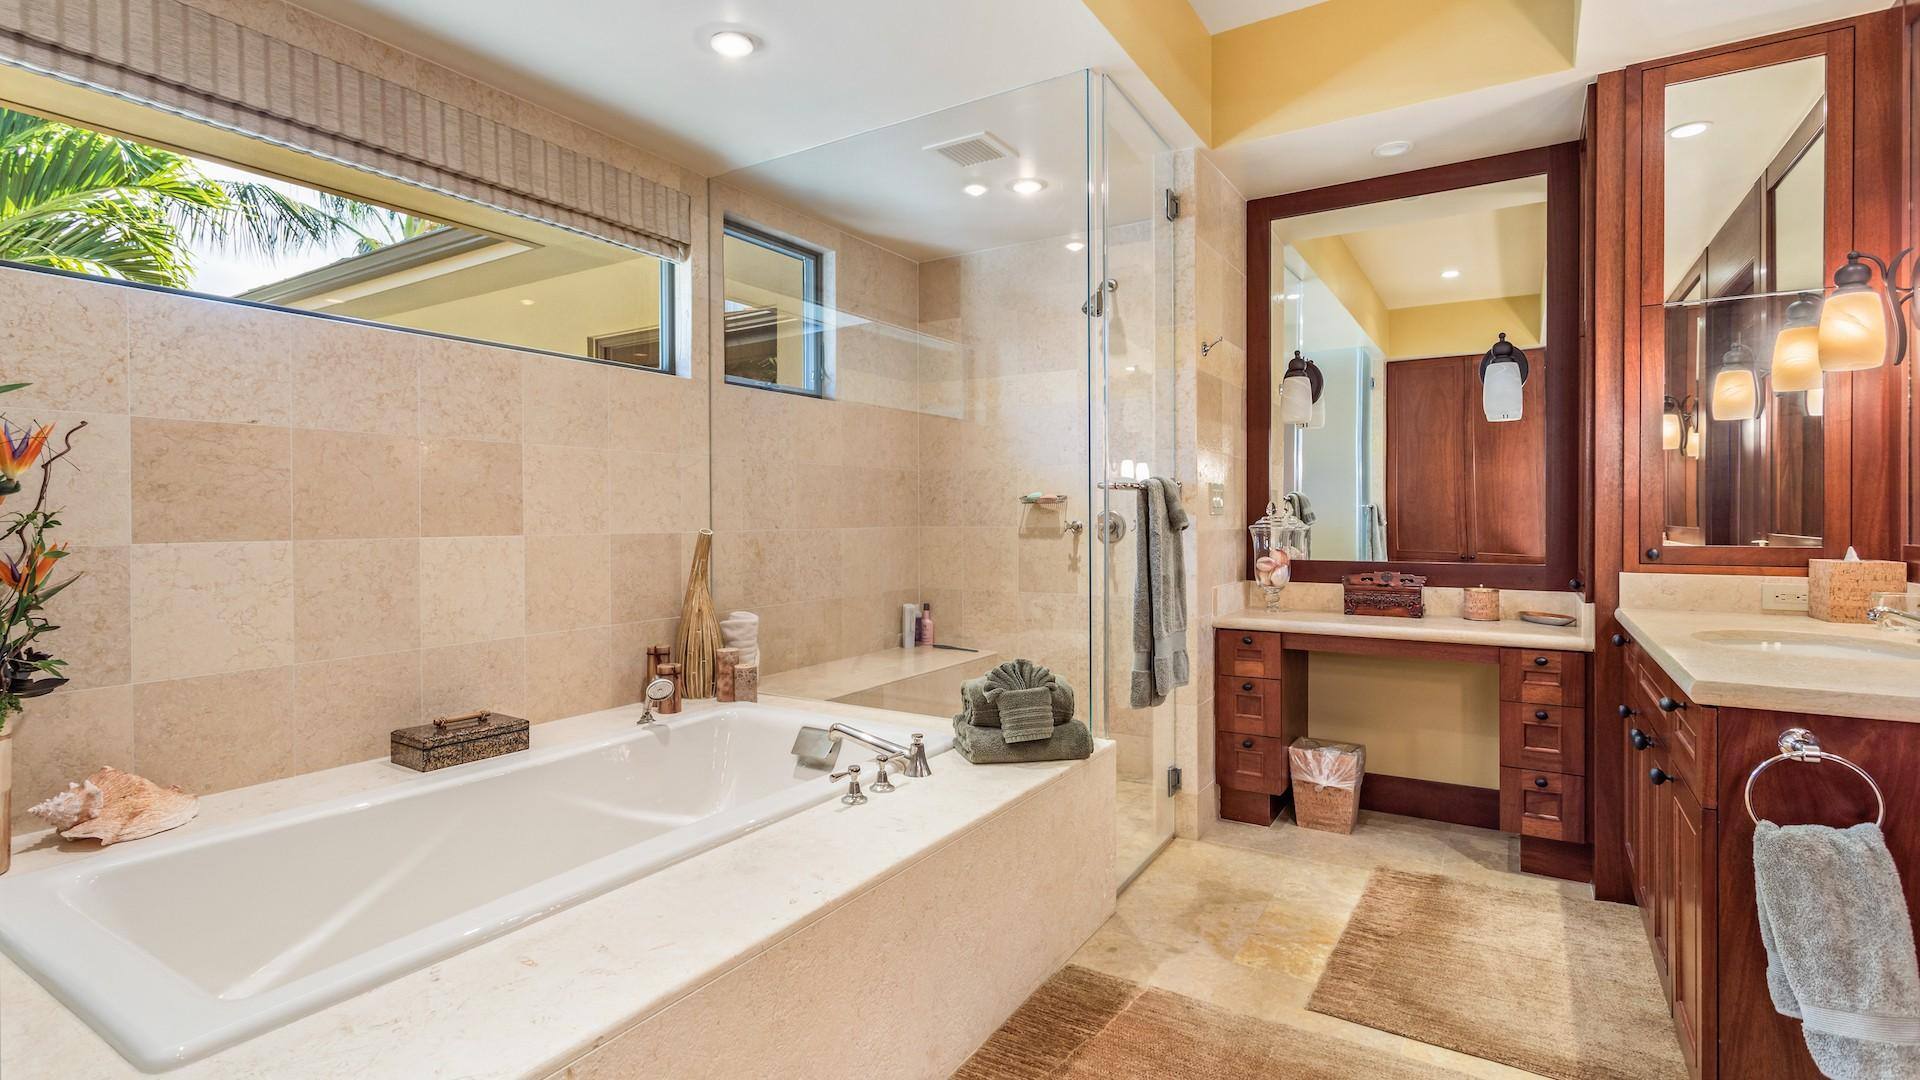 Master Bath with Soaking Tub, Walk-In Shower, Privacy Commode & Dual Vanity.